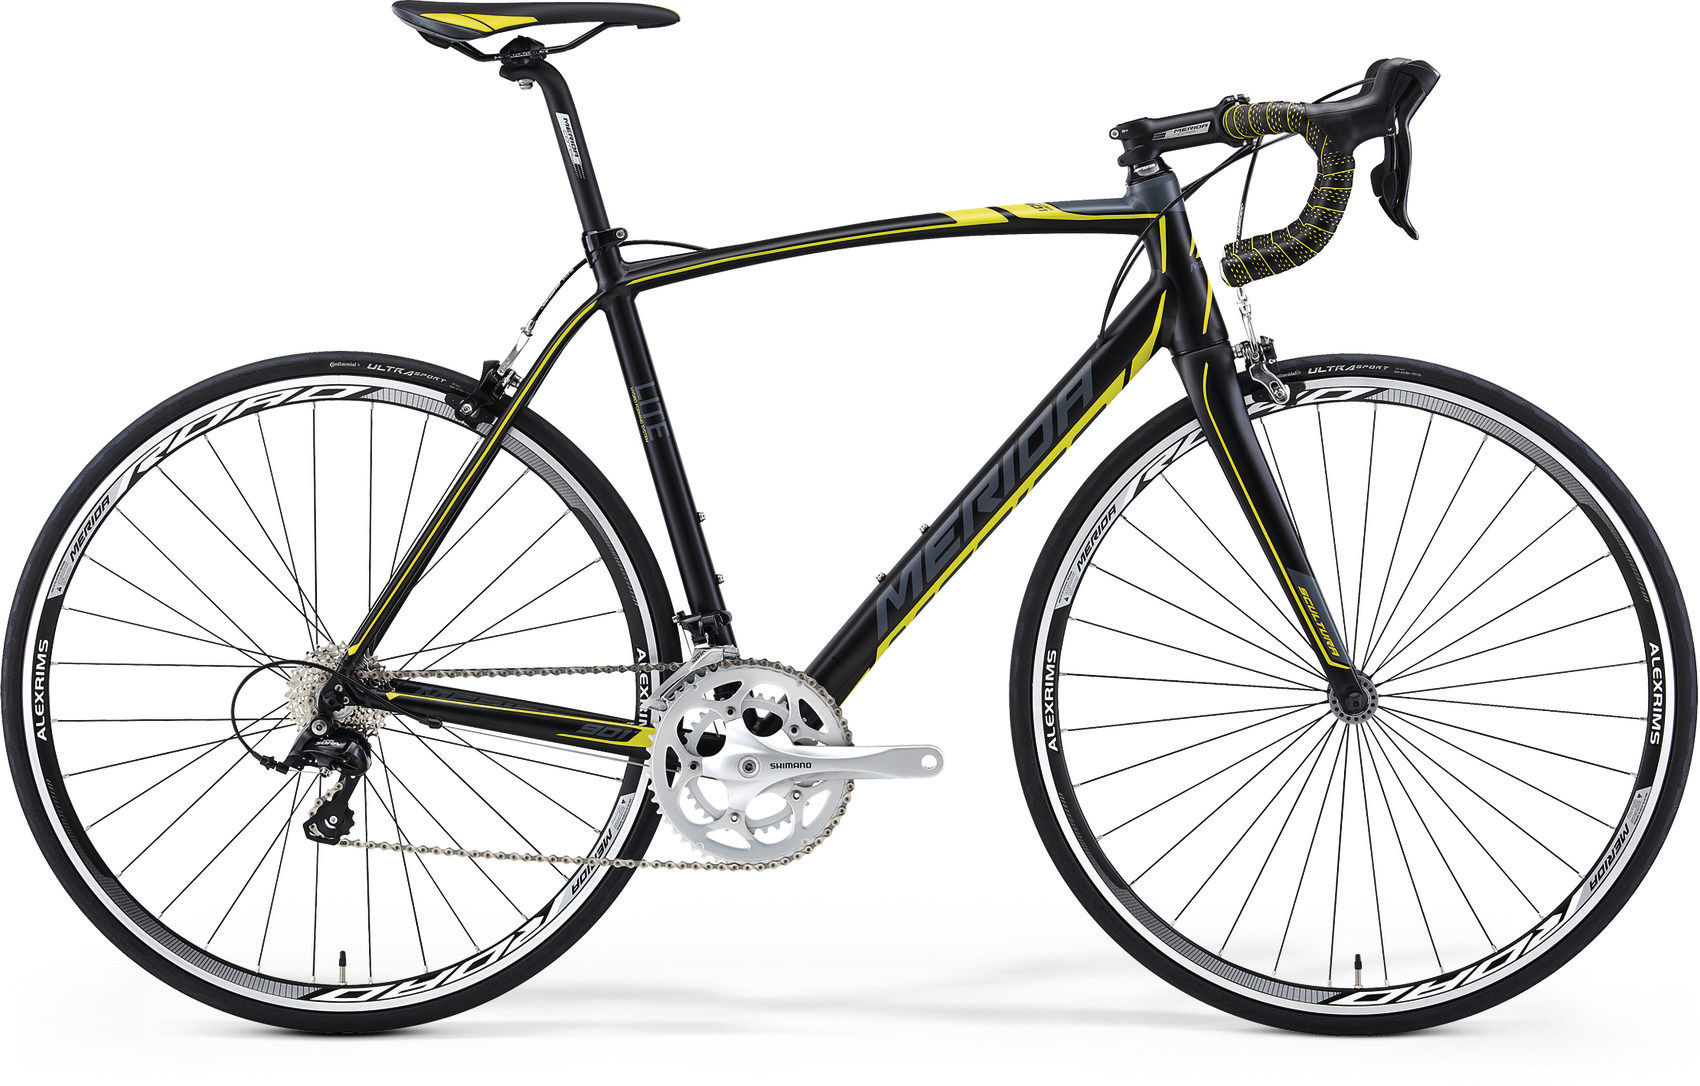 Merida Scultura 901 2014 Review The Bike List